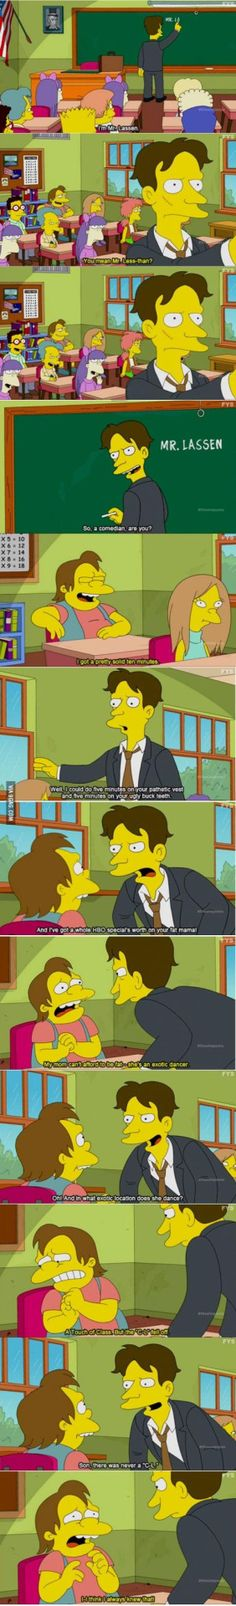 When a bully gets bullied (Simpsons) http://ift.tt/2pmsLw4 #lol #funny #rofl #memes #lmao #hilarious #cute